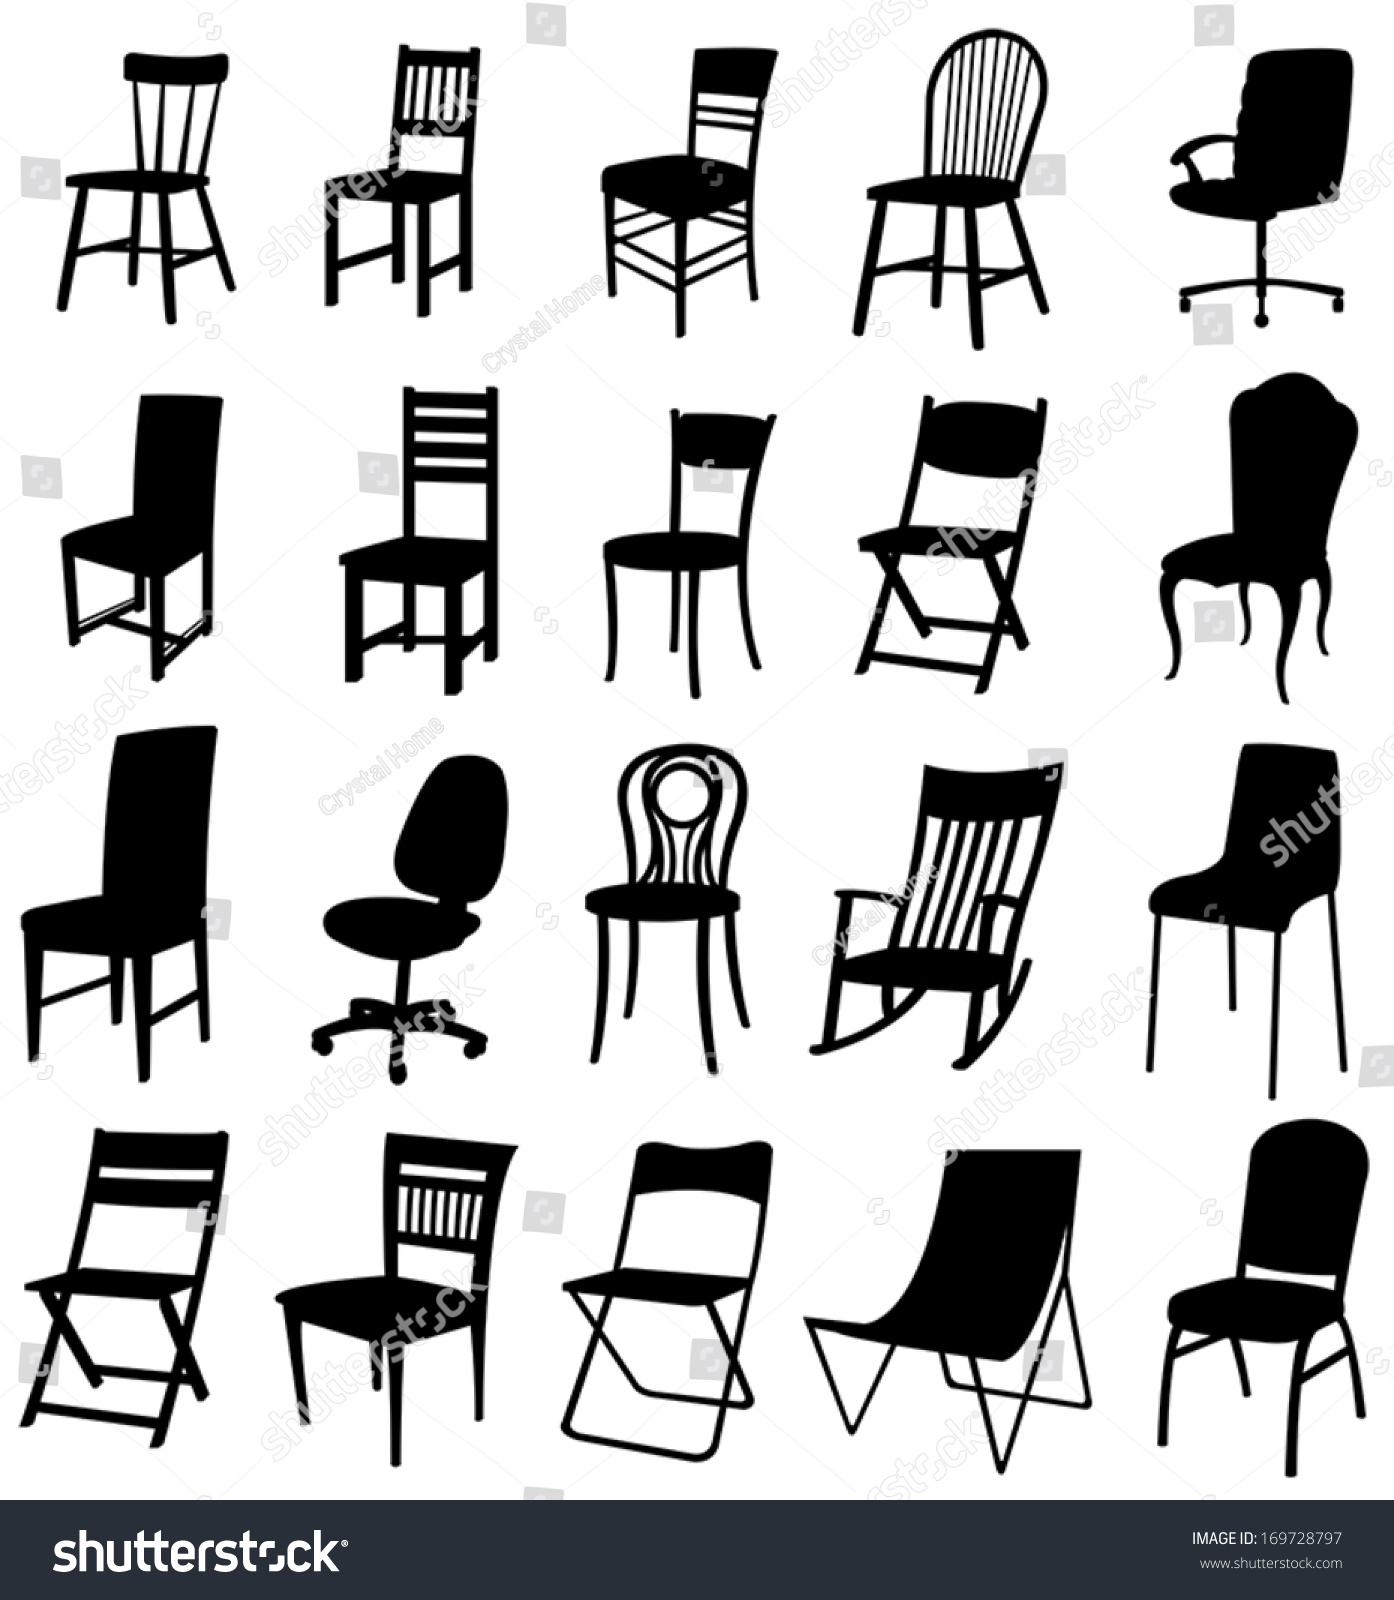 Antique chair silhouette - Sets Of Silhouette Furniture 2 Create By Vector